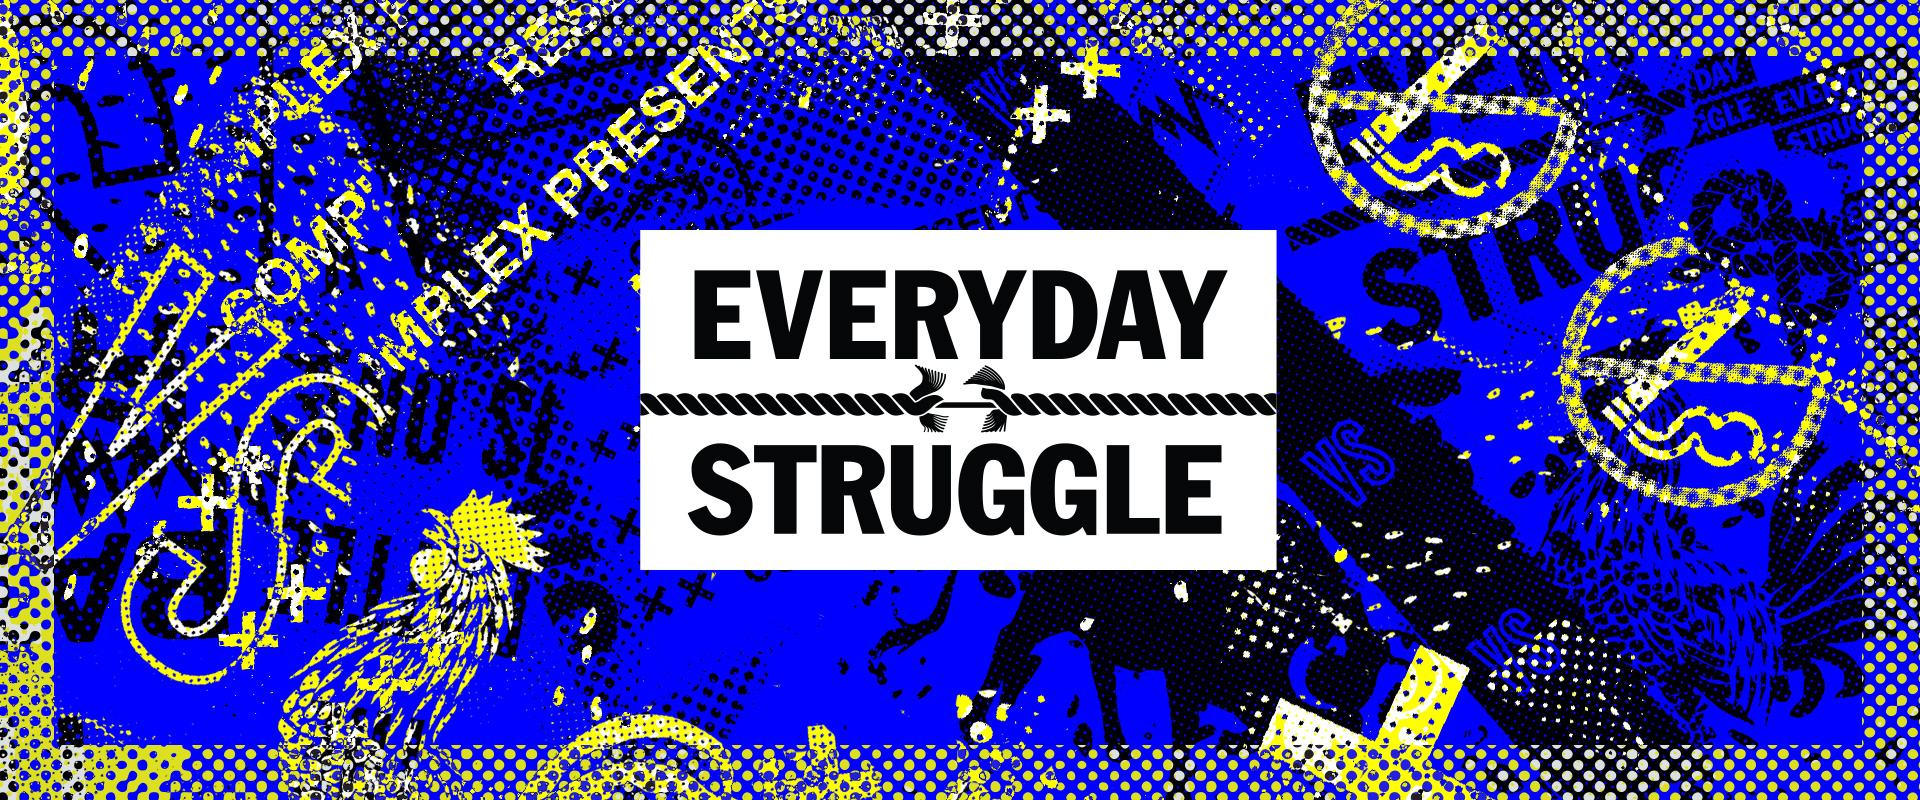 Logic Best Rapper Alive?, Cardi to QC, New Weeknd Album? | Everyday Struggle